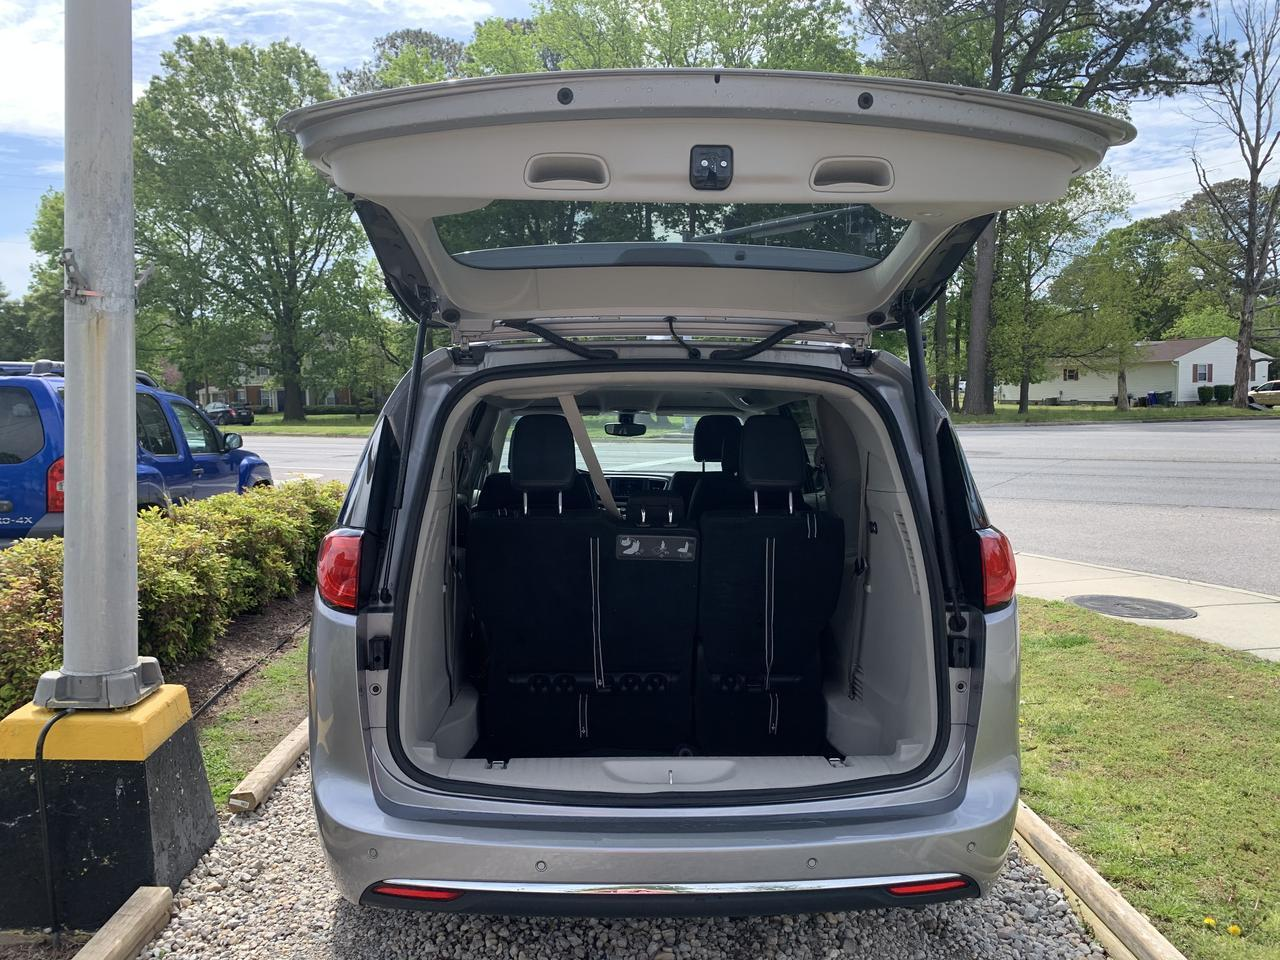 2018 CHRYSLER PACIFICA TOURING L, WARRANTY, LEATHER, 3RD ROW, HEATED SEATS, BLUETOOTH, BACKUP CAM, SIRIUS RADIO! Norfolk VA